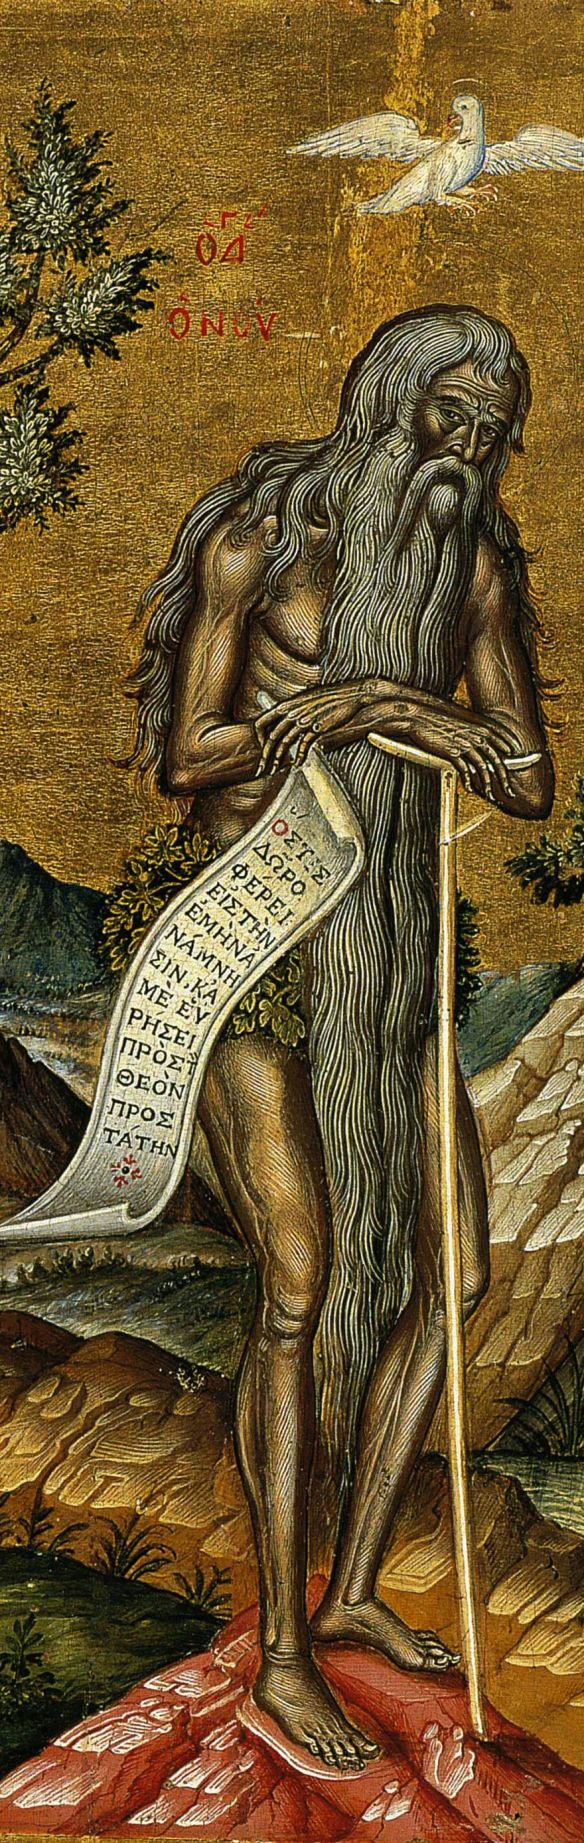 In an earlier posting, I talked about the rather dubious saint Onuphrios the Great — another of those ascetics found in icons. (see: Today we will look at a very sophisticated 17th century Gr…